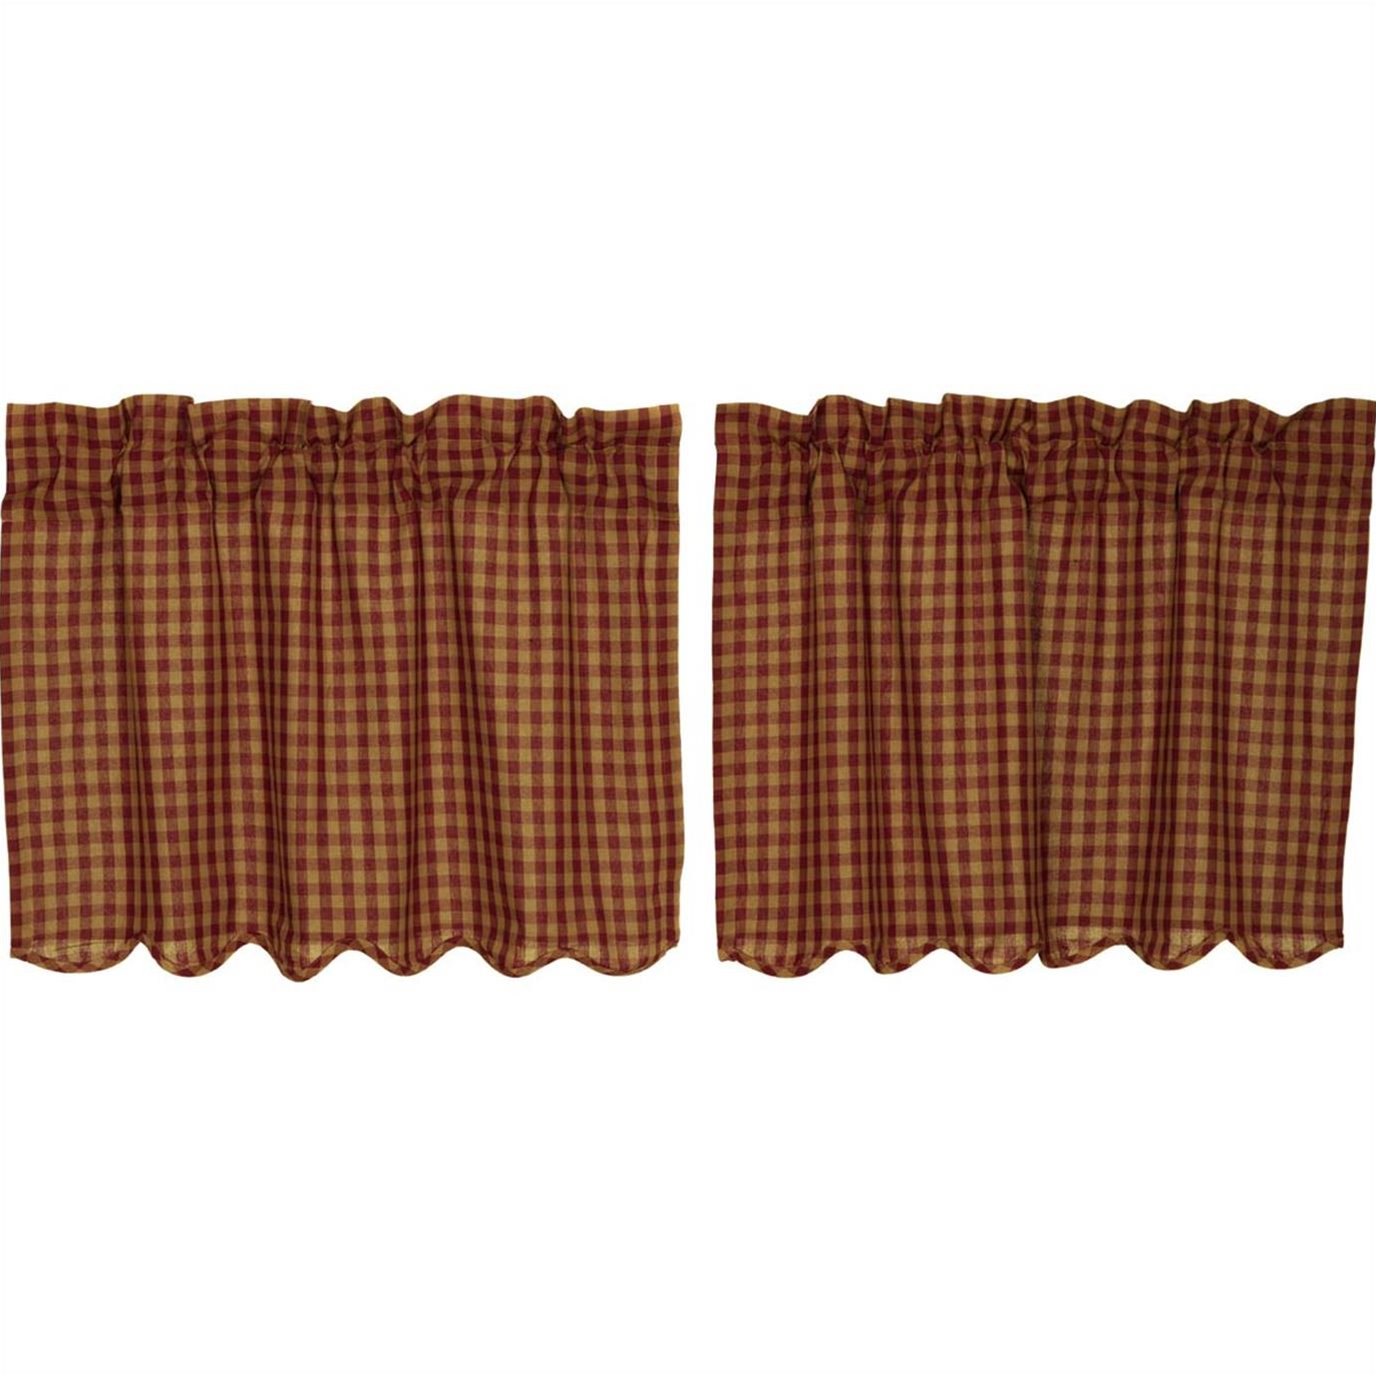 Burgundy Check Scalloped Tier Set of 2 L24xW36